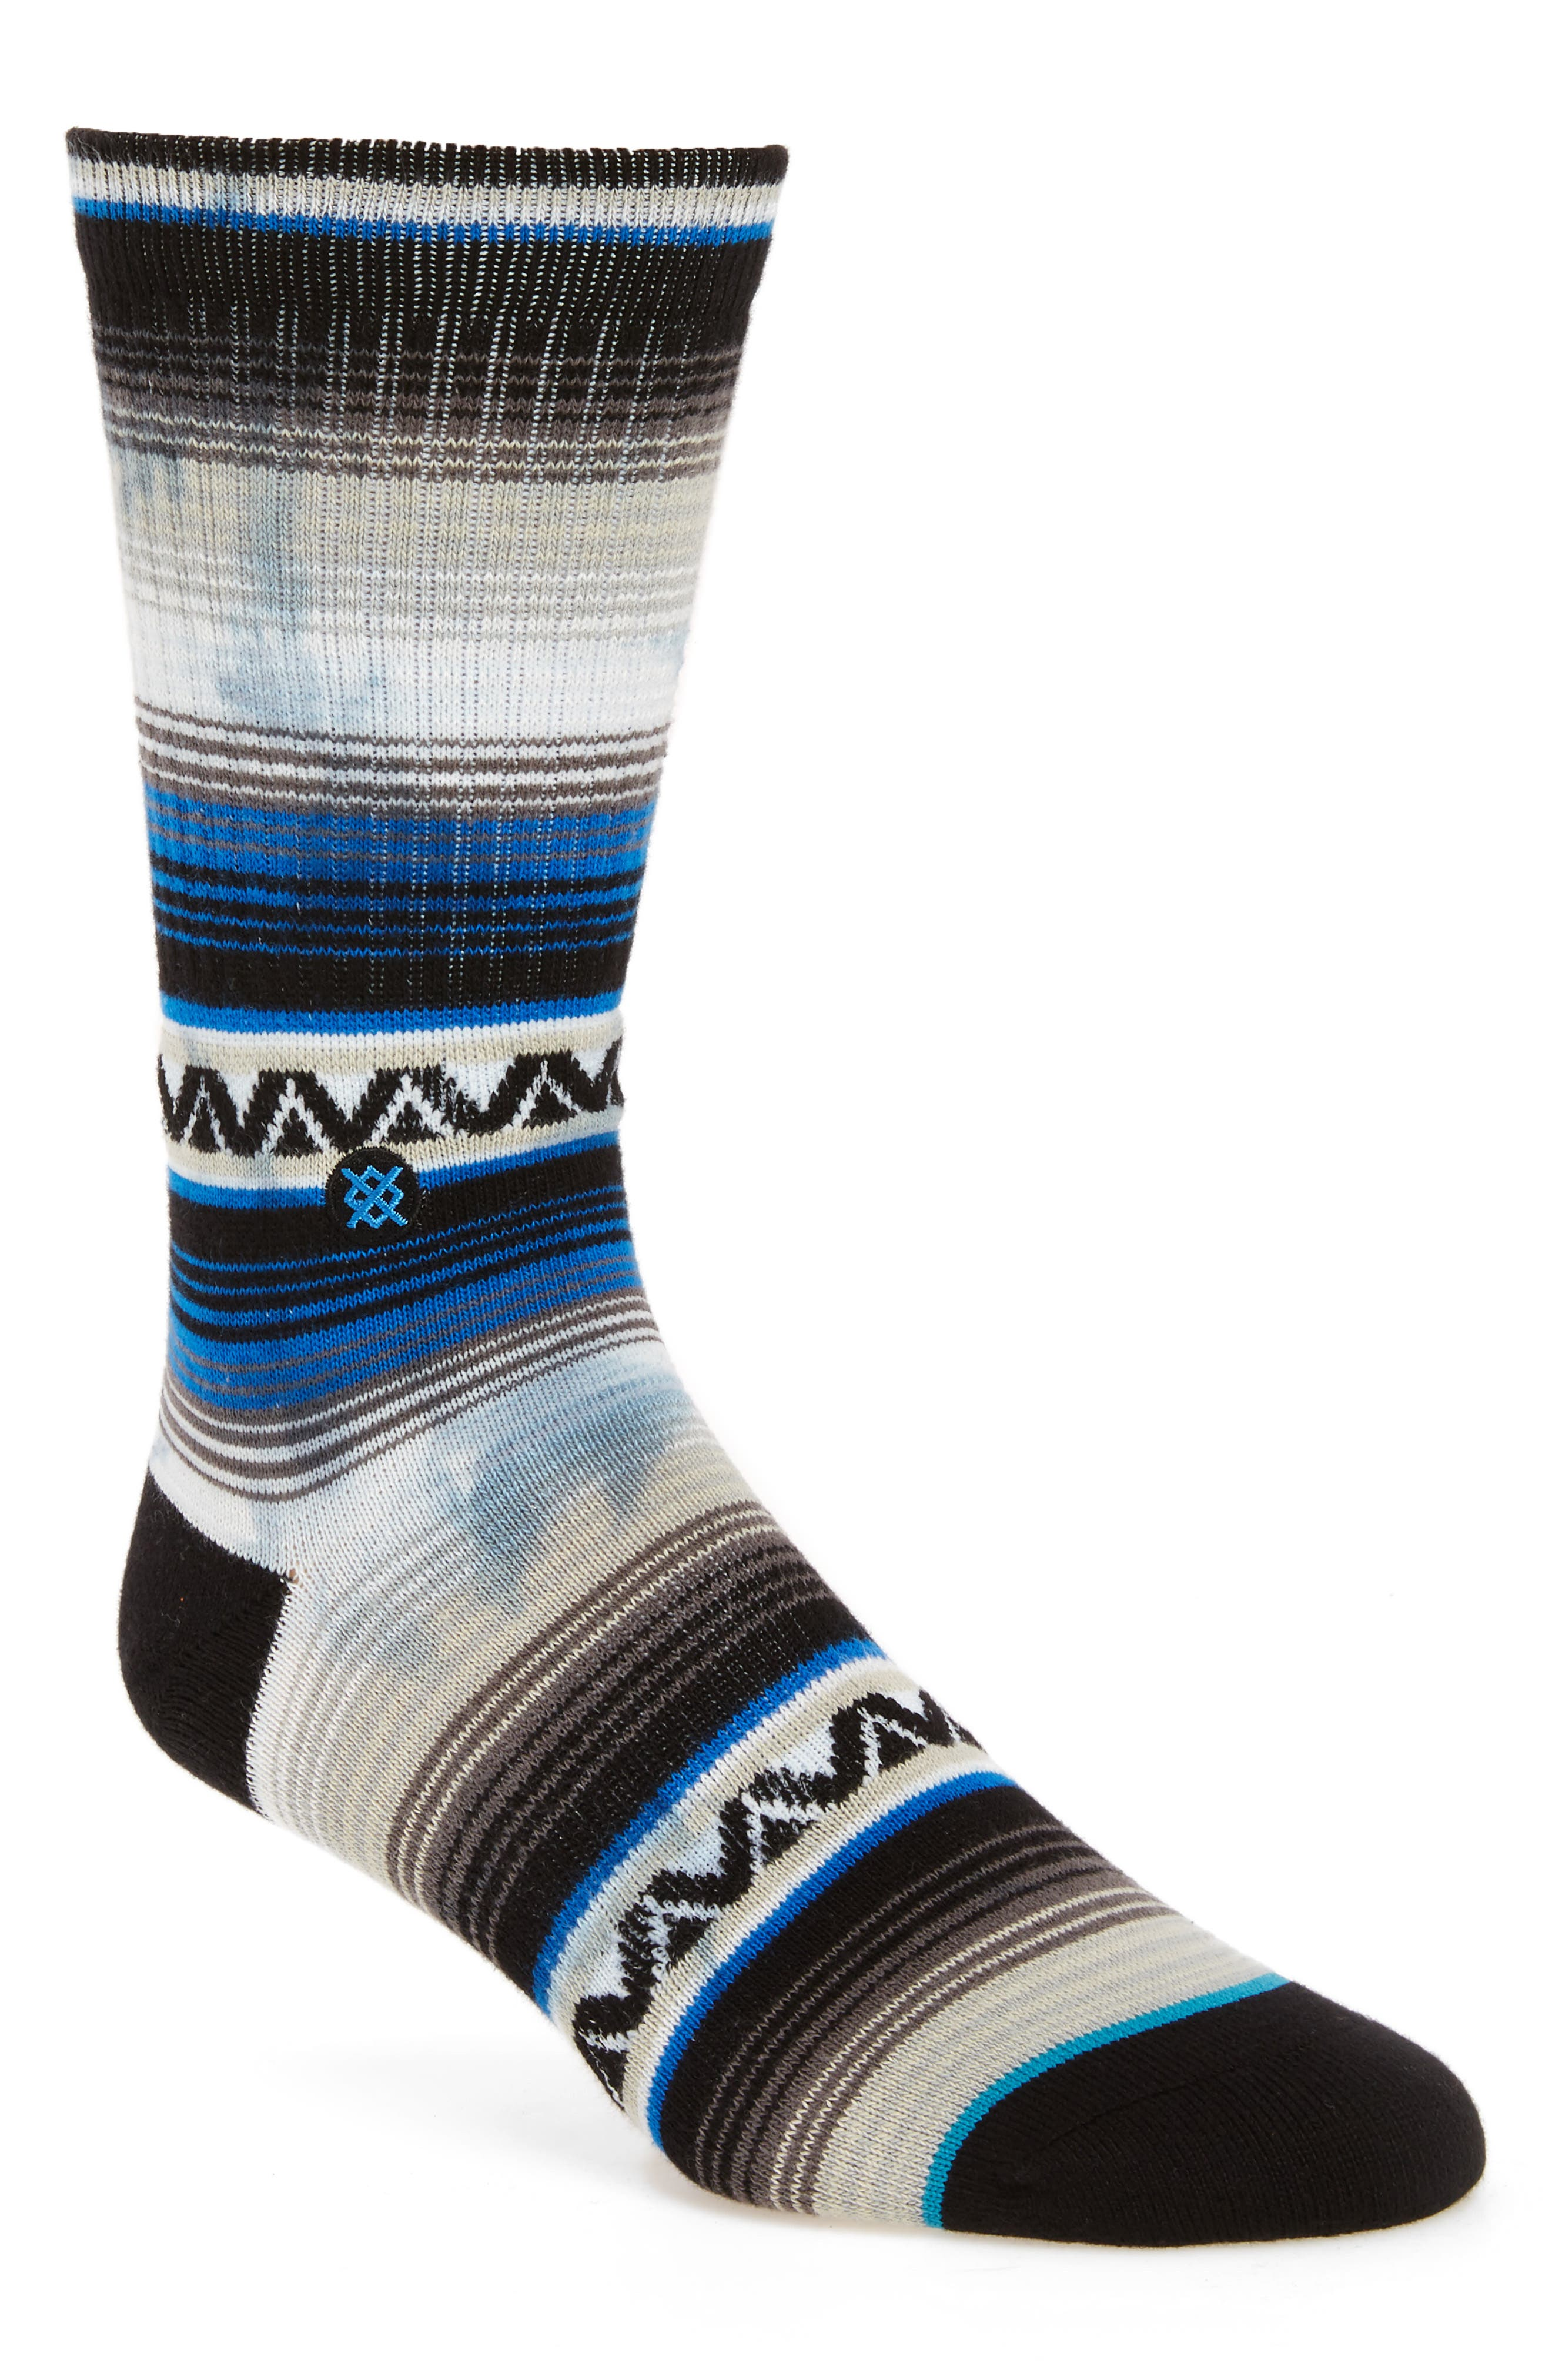 Alternate Image 1 Selected - Stance Mexi Crew Socks